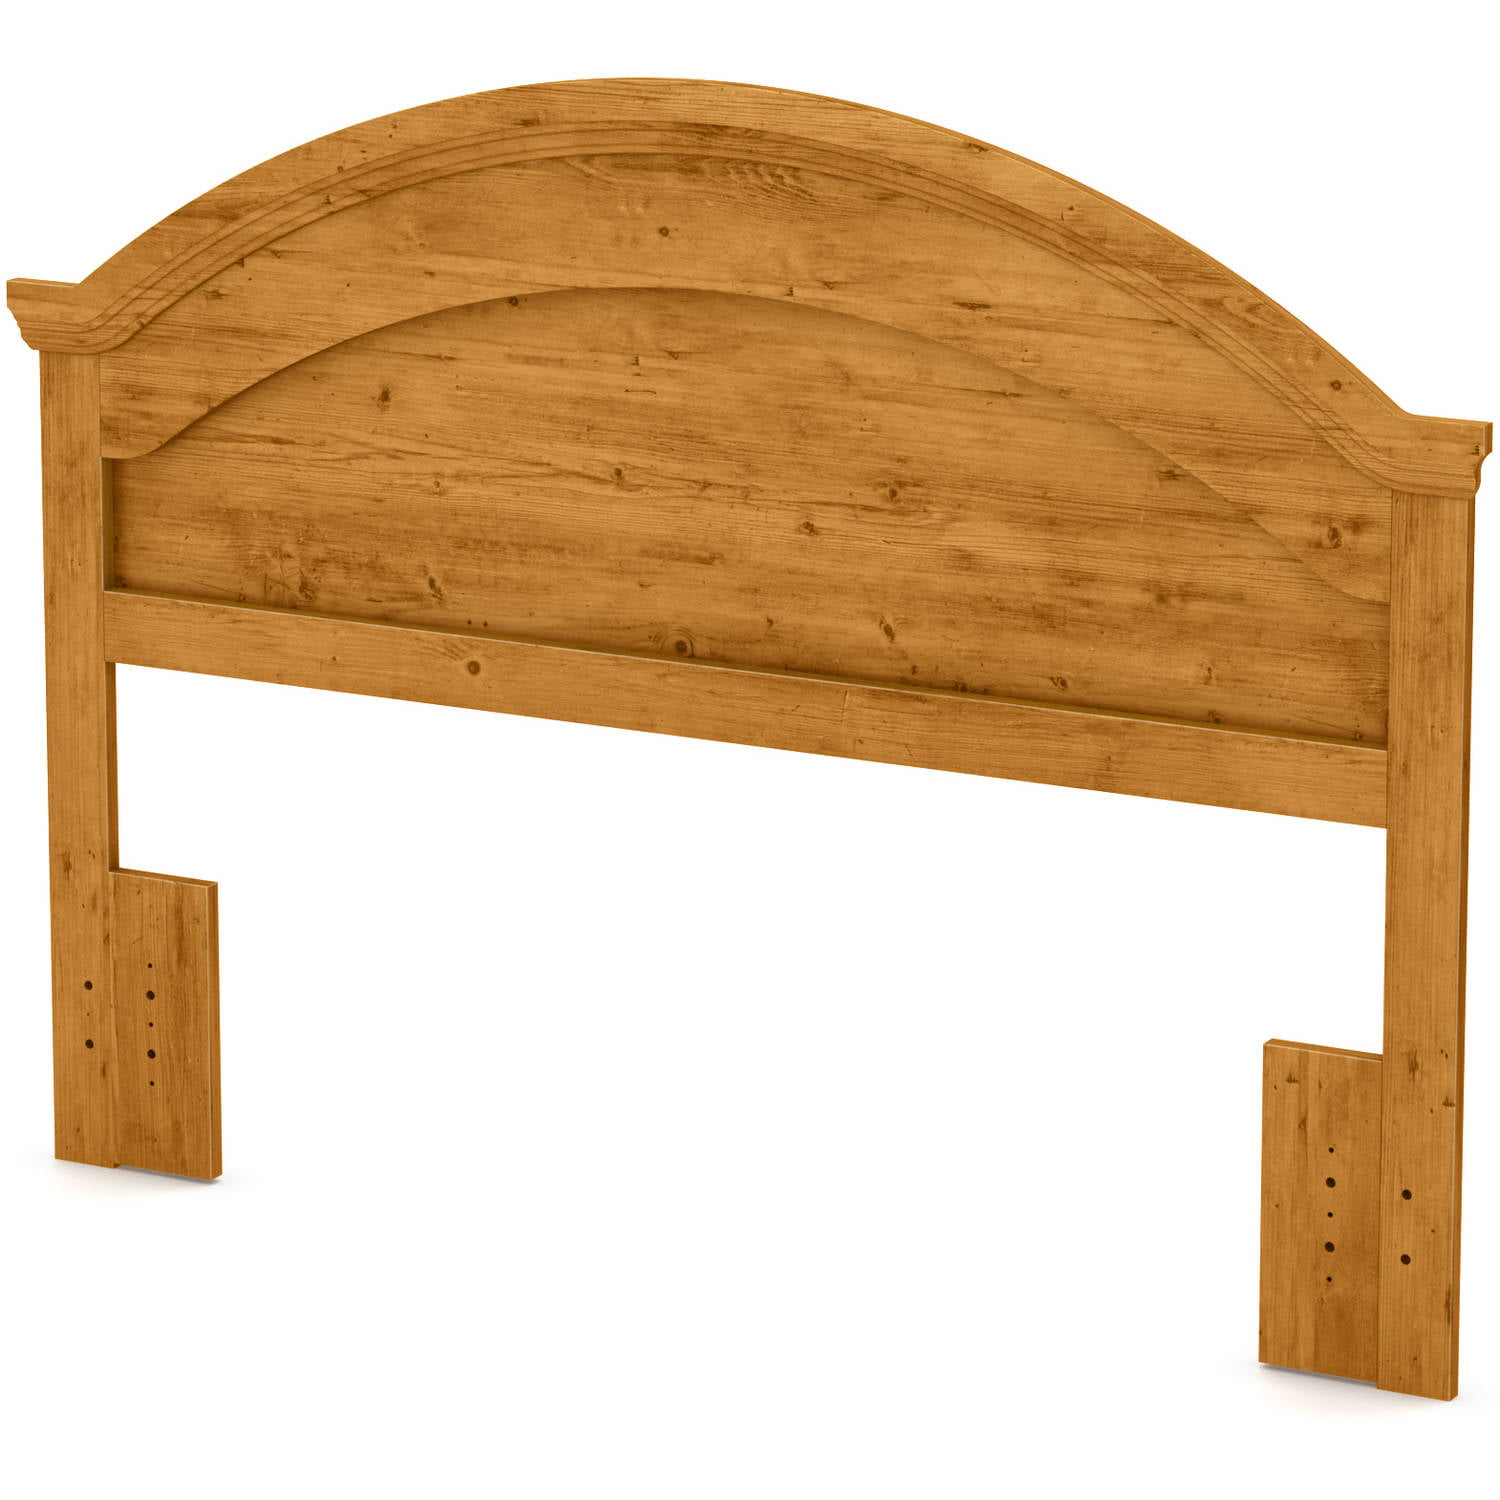 South Shore Cabana 54 60'' Full Queen Headboard, Country Pine by South Shore